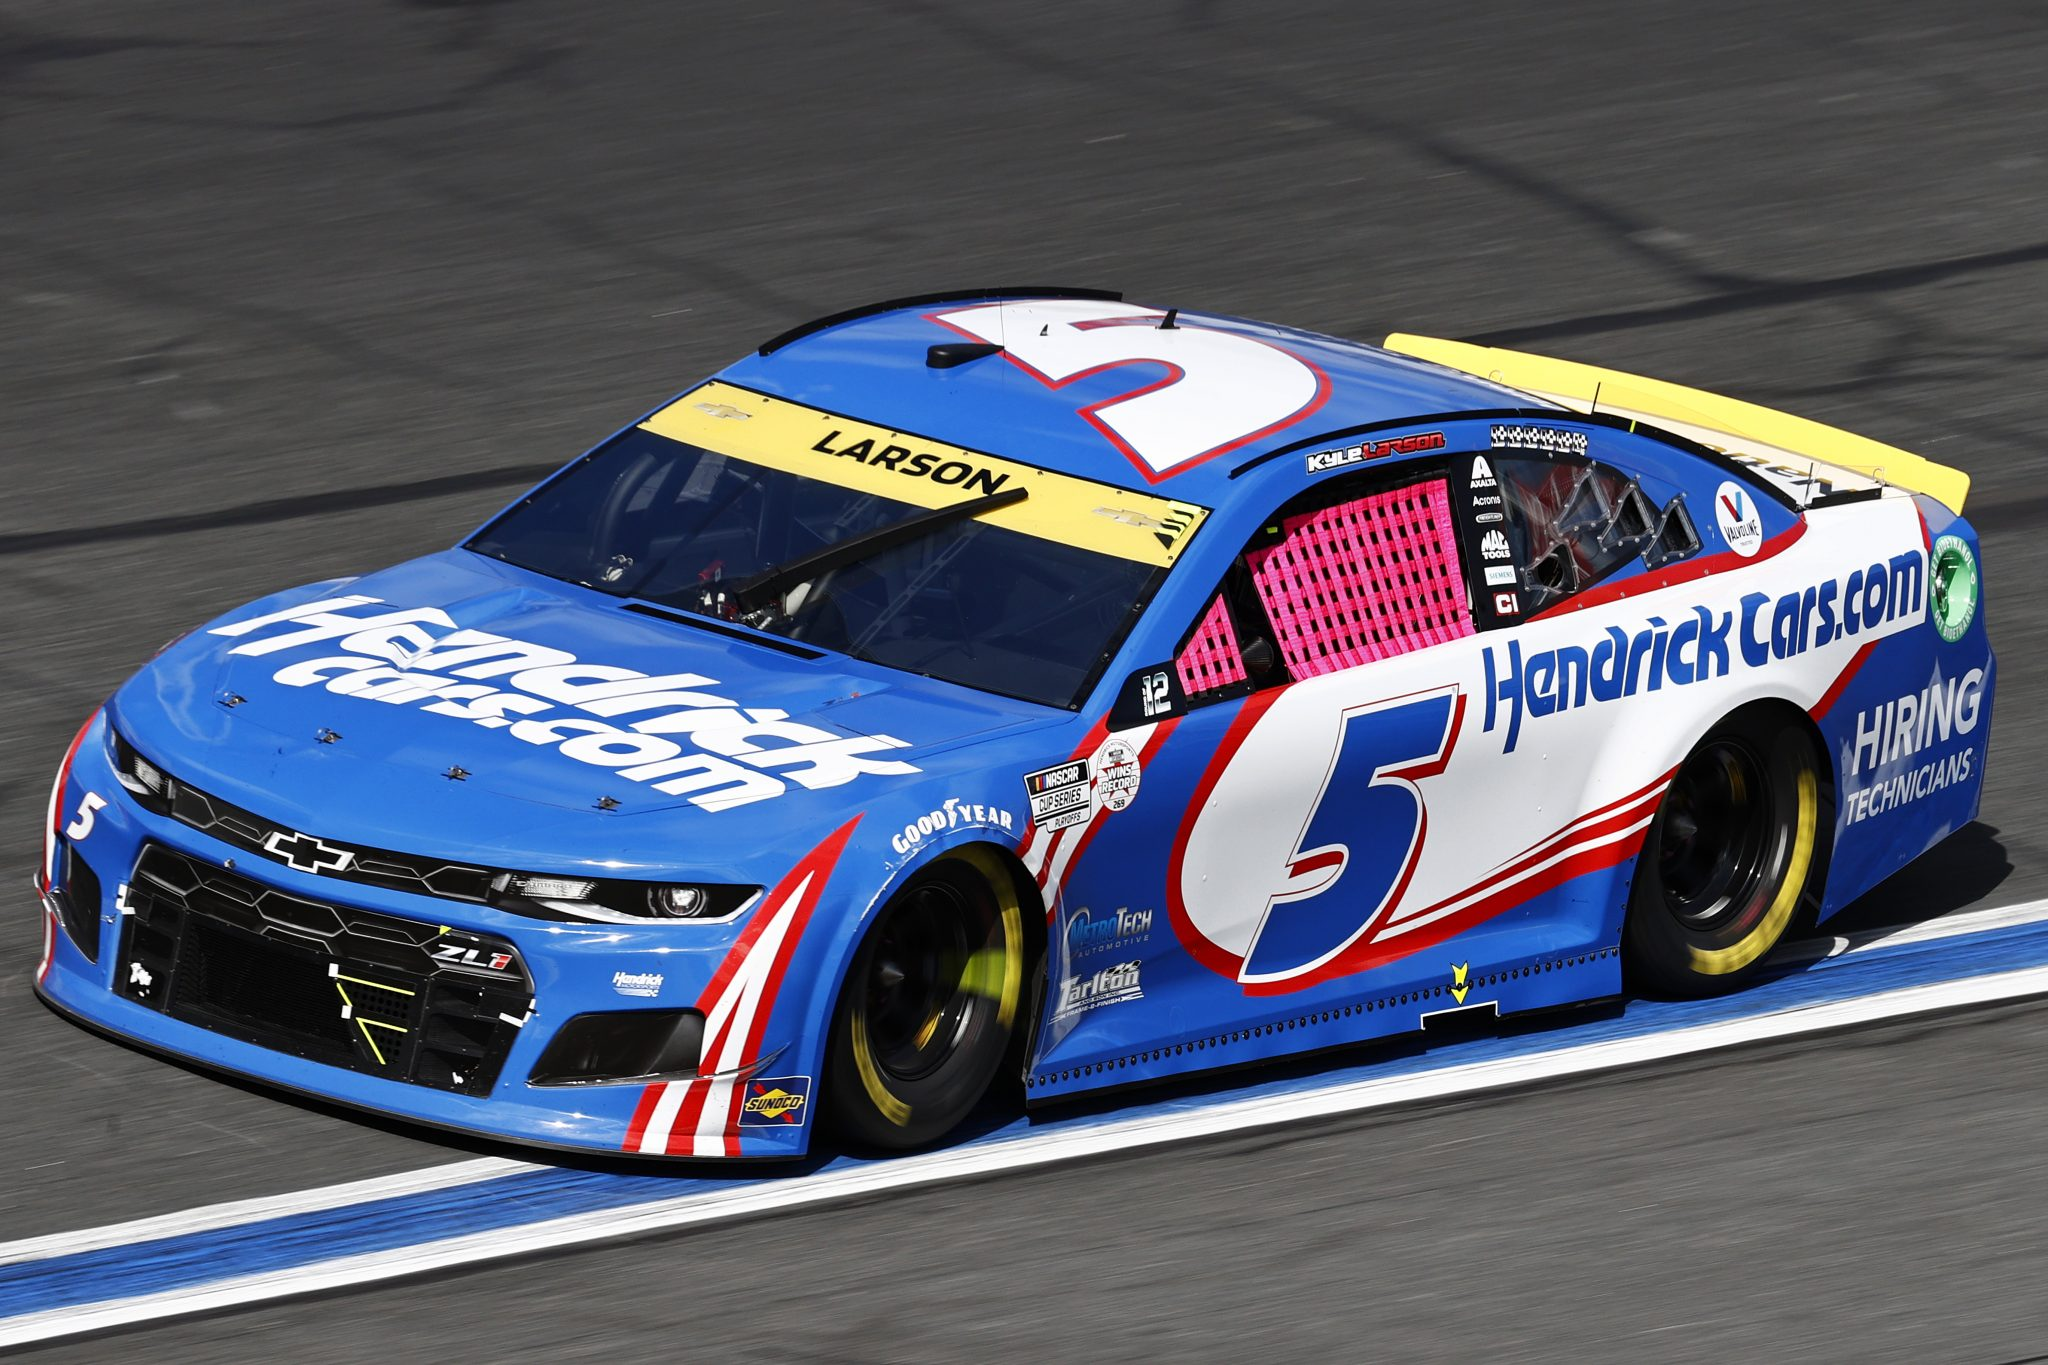 CONCORD, NORTH CAROLINA - OCTOBER 10: Kyle Larson, driver of the #5 HendrickCars.com Chevrolet, drives during the NASCAR Cup Series Bank of America ROVAL 400 at Charlotte Motor Speedway on October 10, 2021 in Concord, North Carolina. (Photo by Jared C. Tilton/Getty Images) | Getty Images